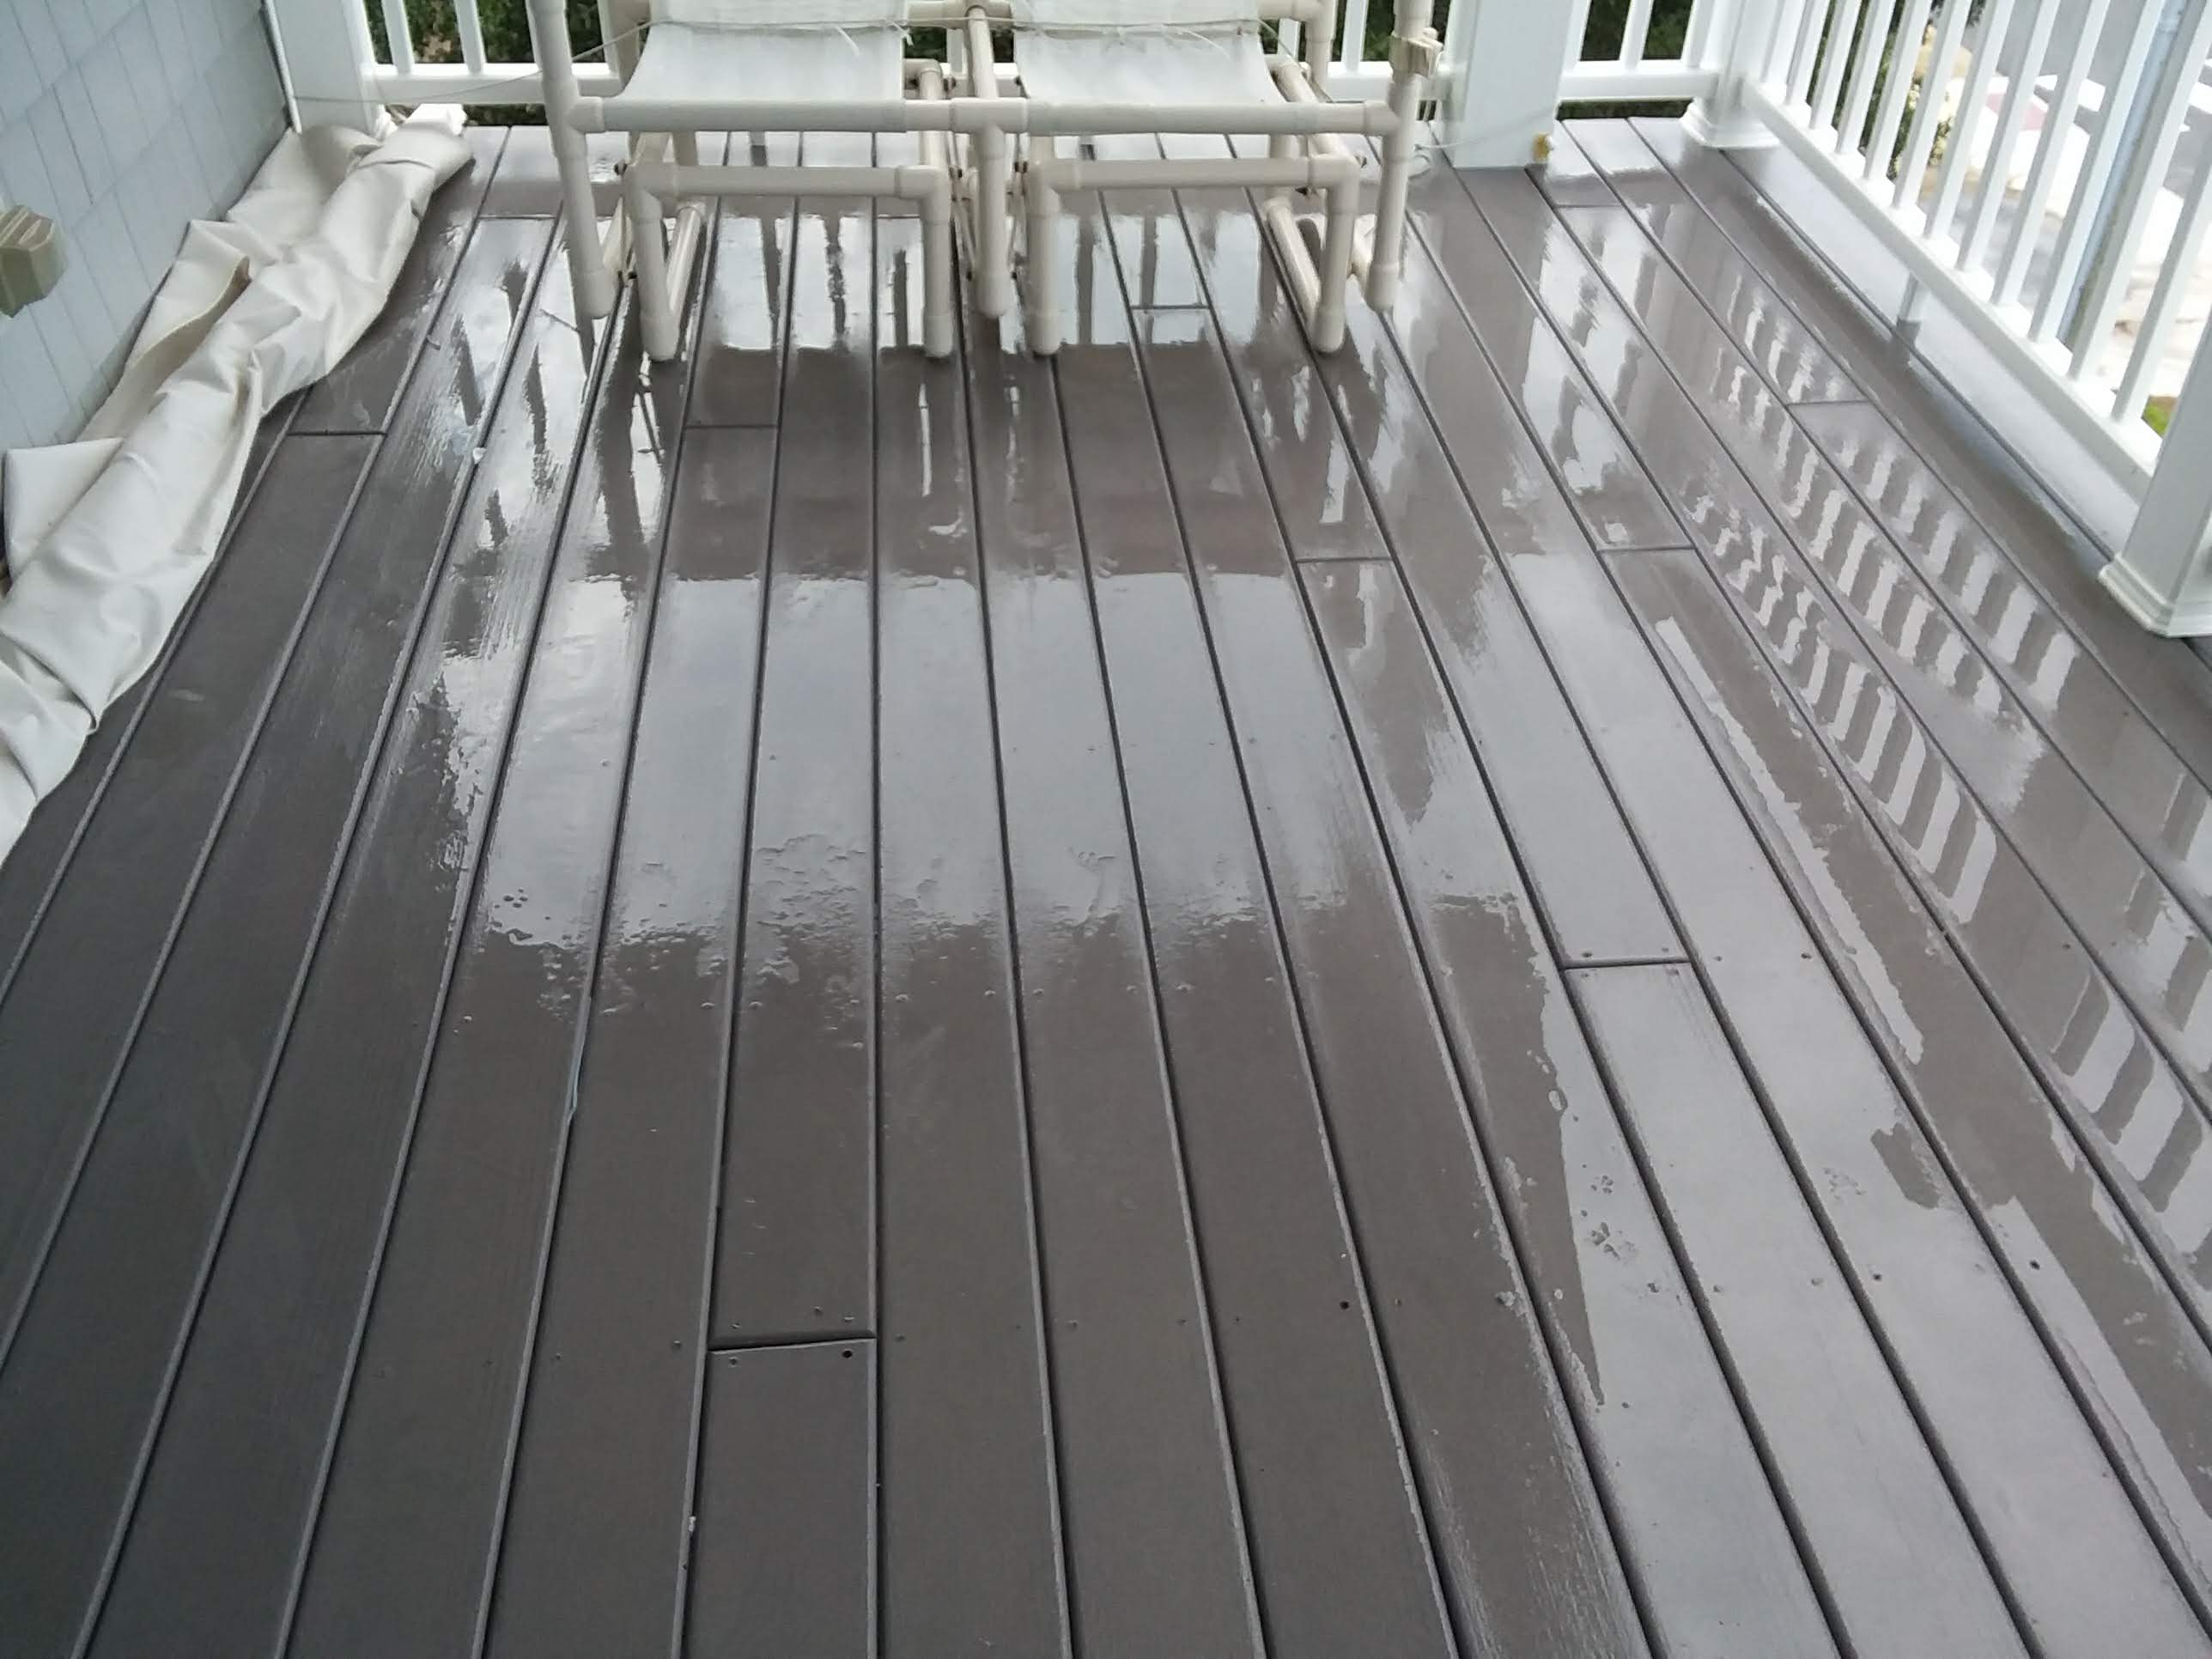 Carolina Pro Clean pressure washed deck 7